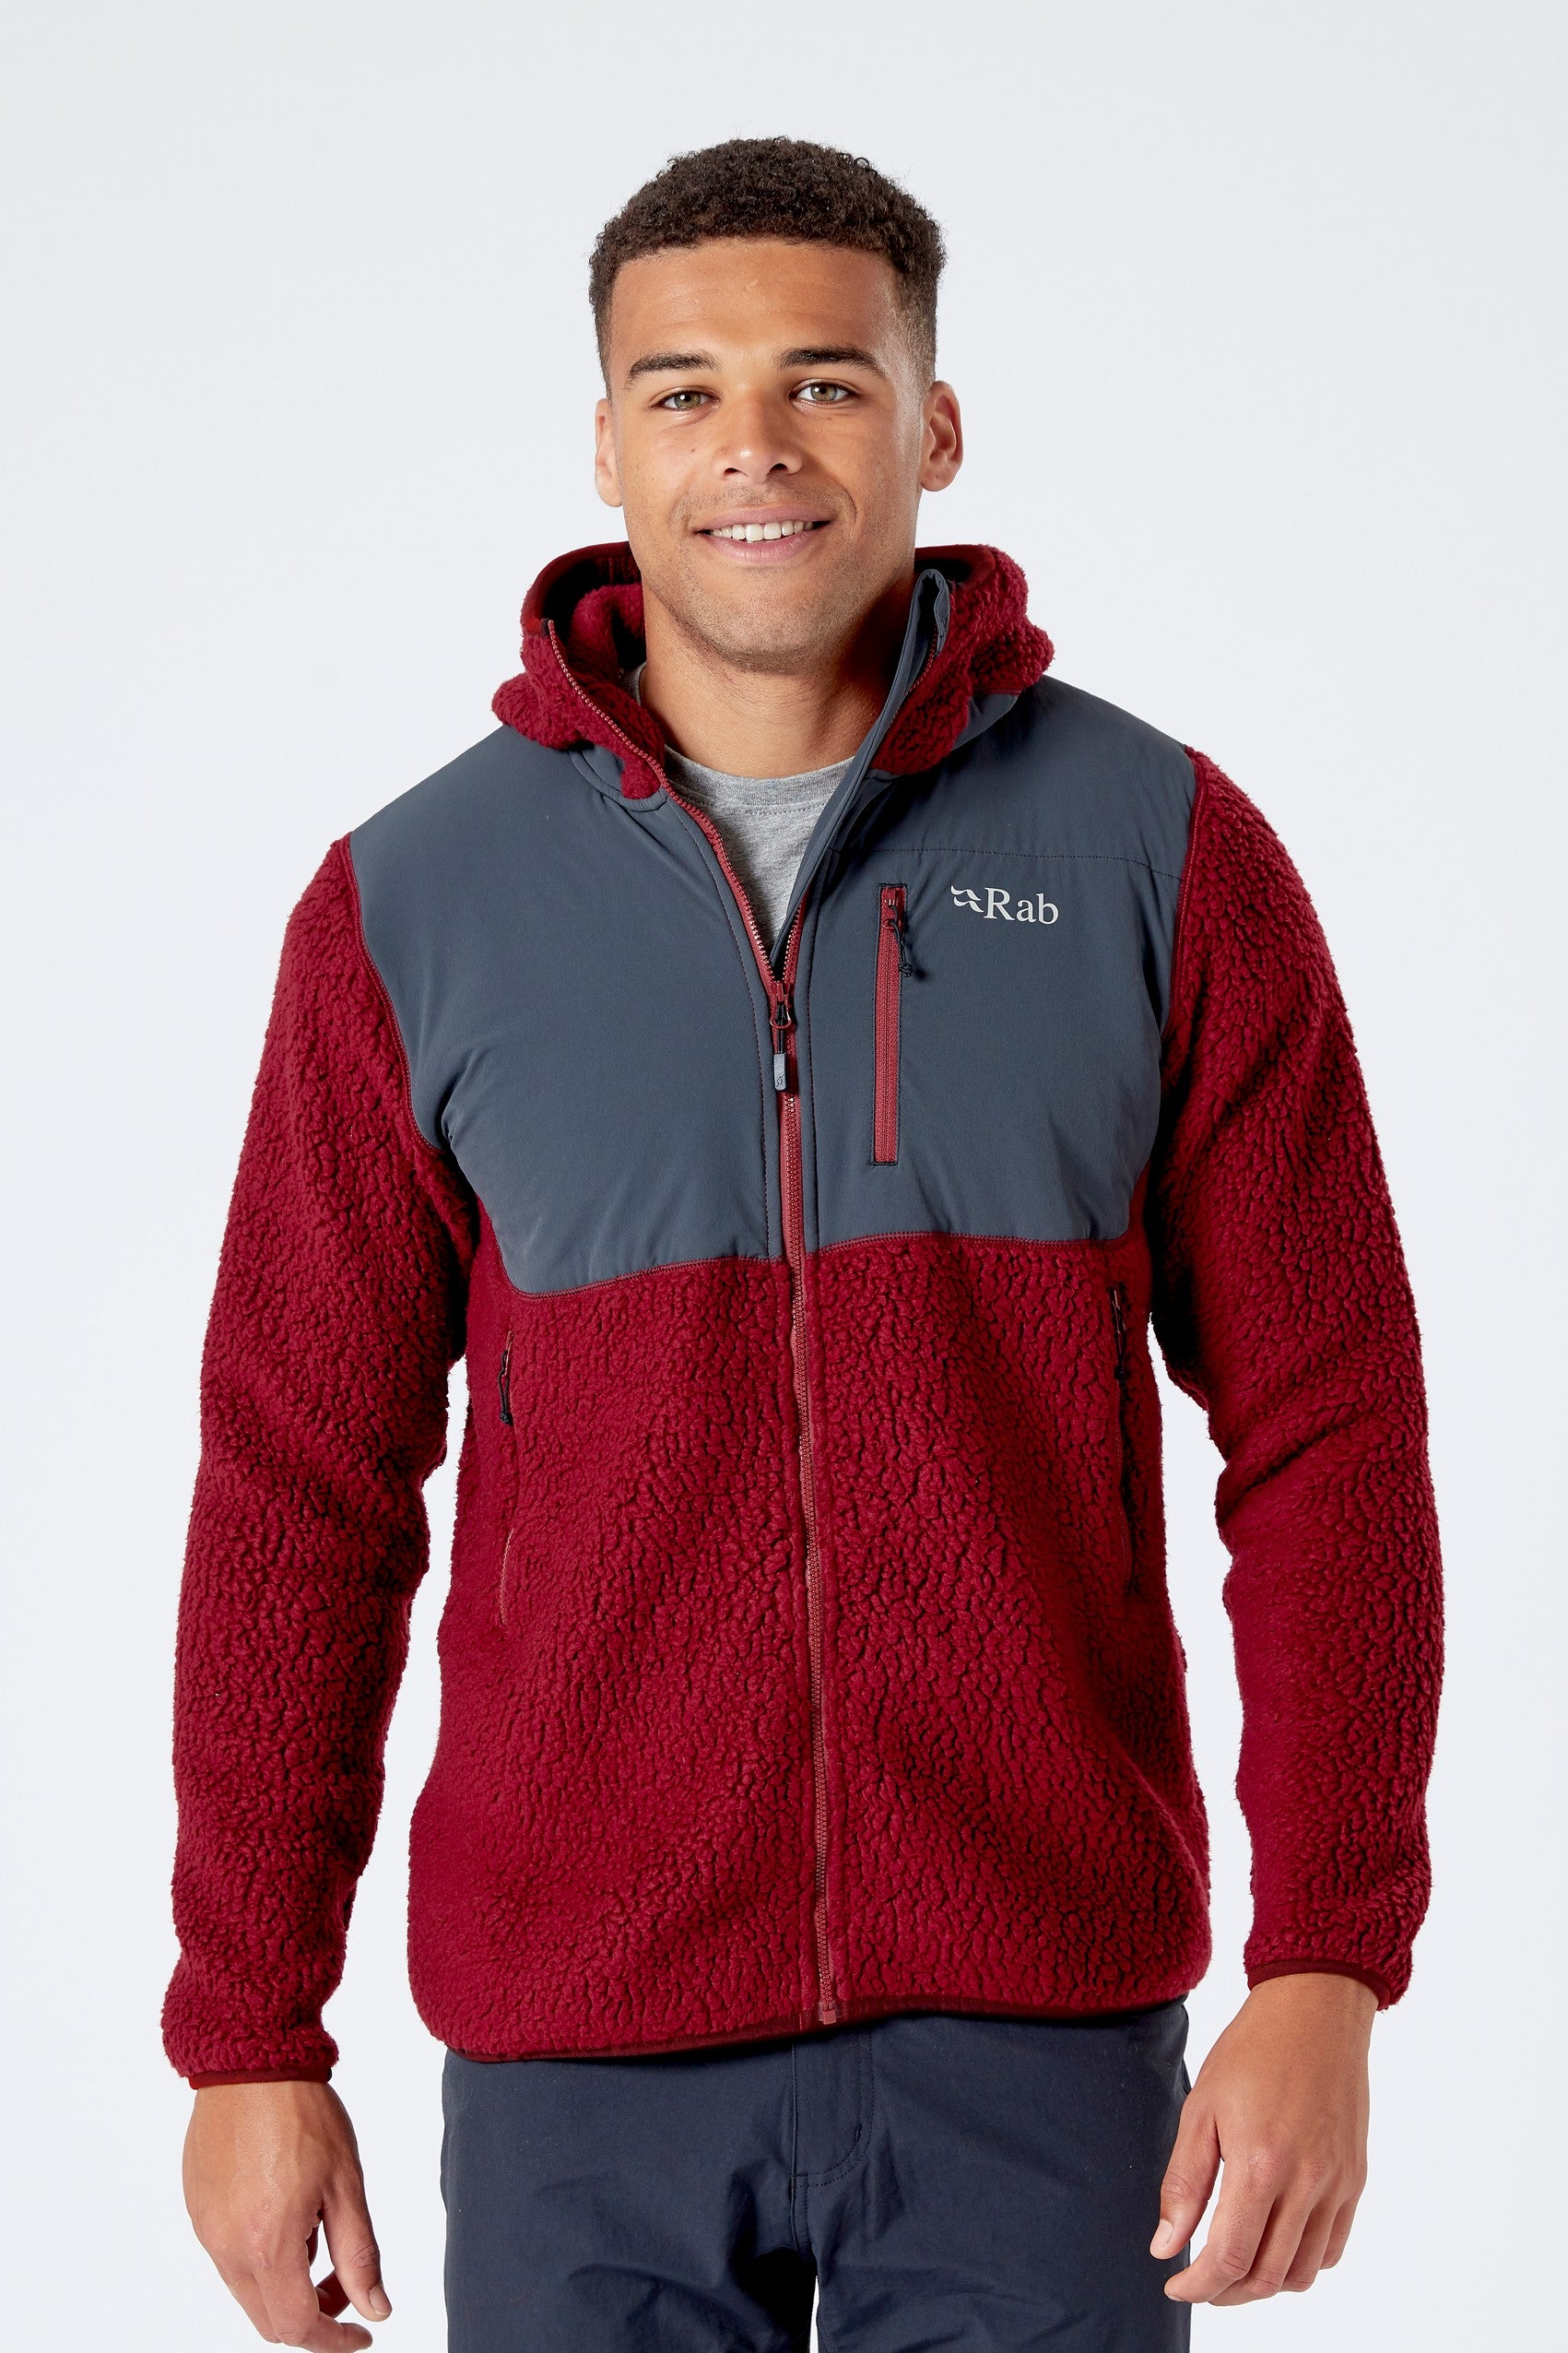 Rab Outpost Jacket for Men in Oxblood Red